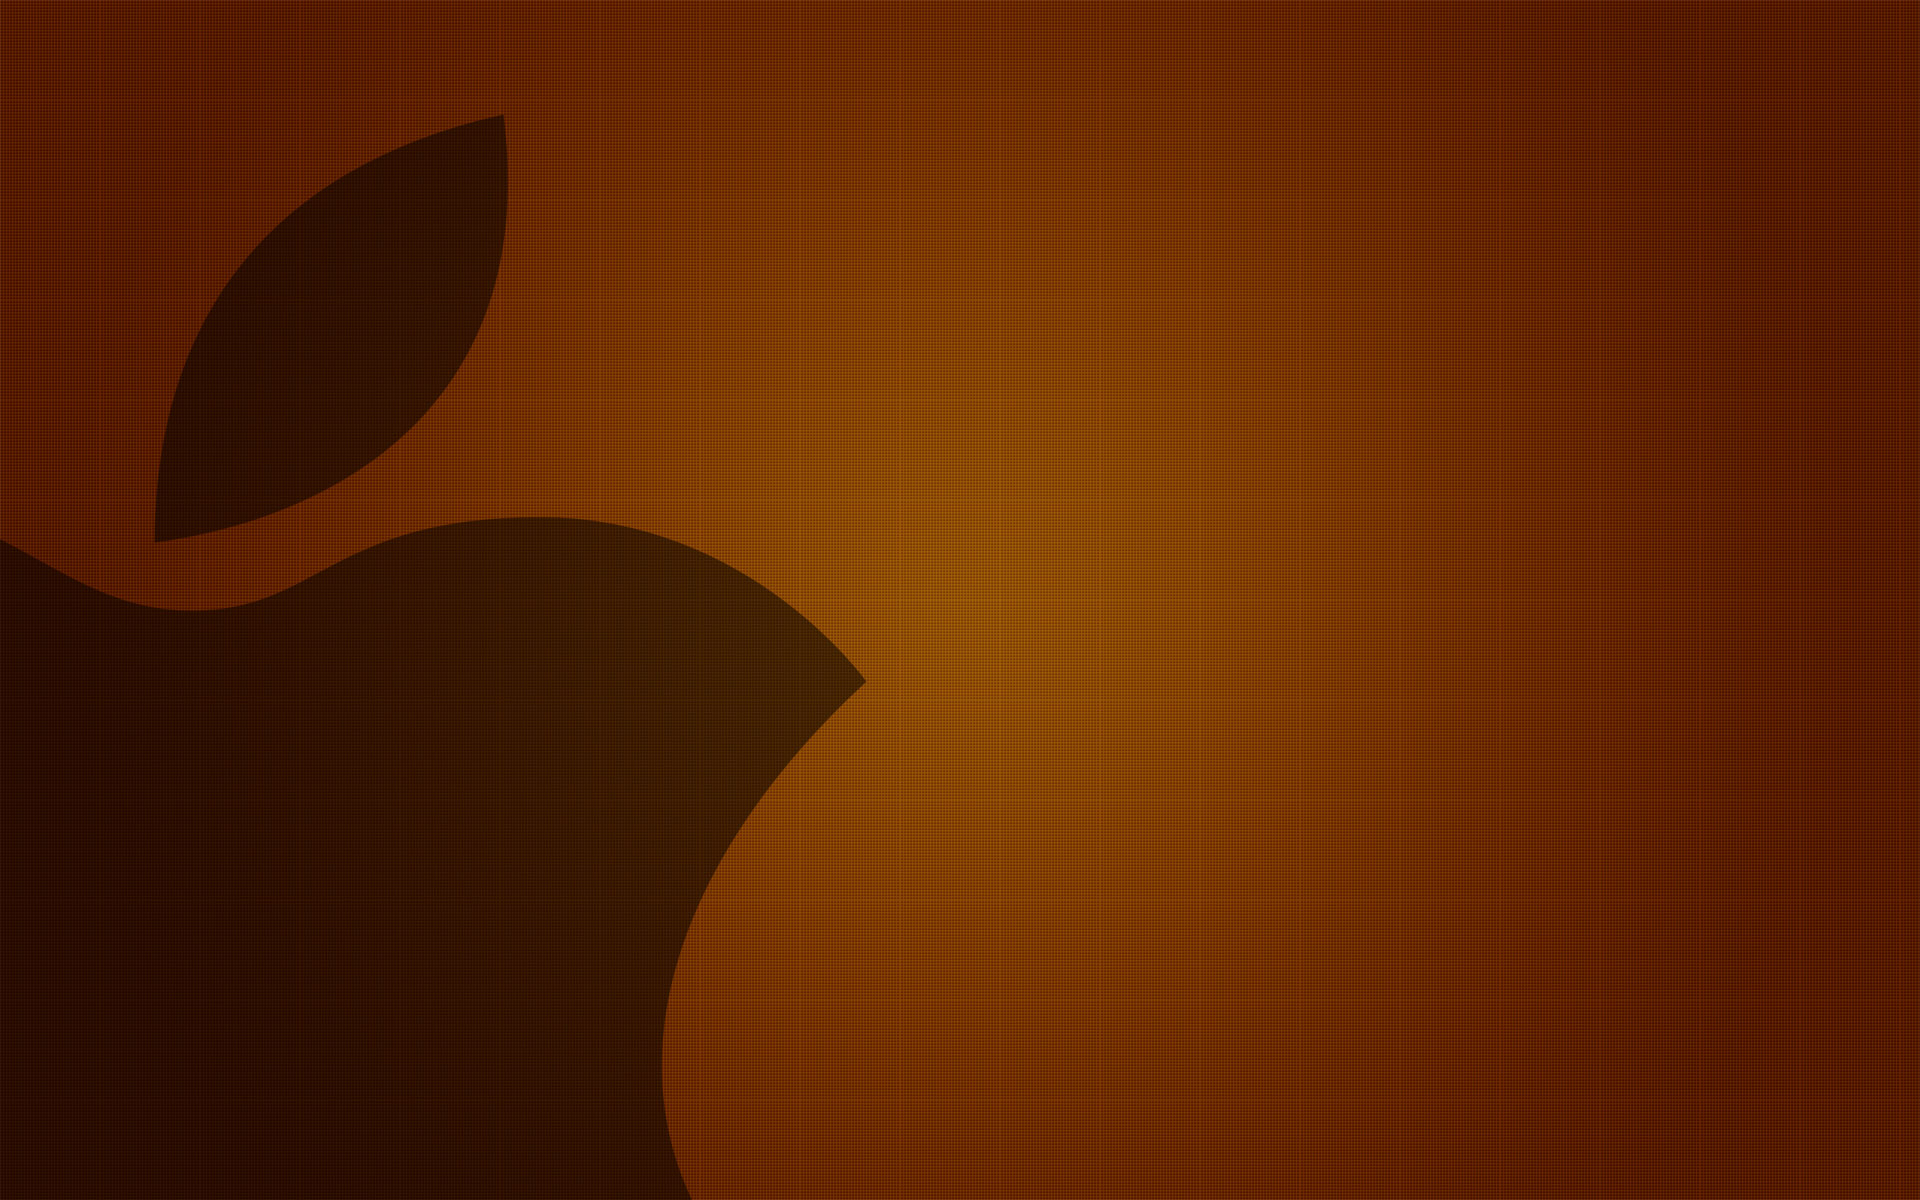 HD Apple wallpaper 19253